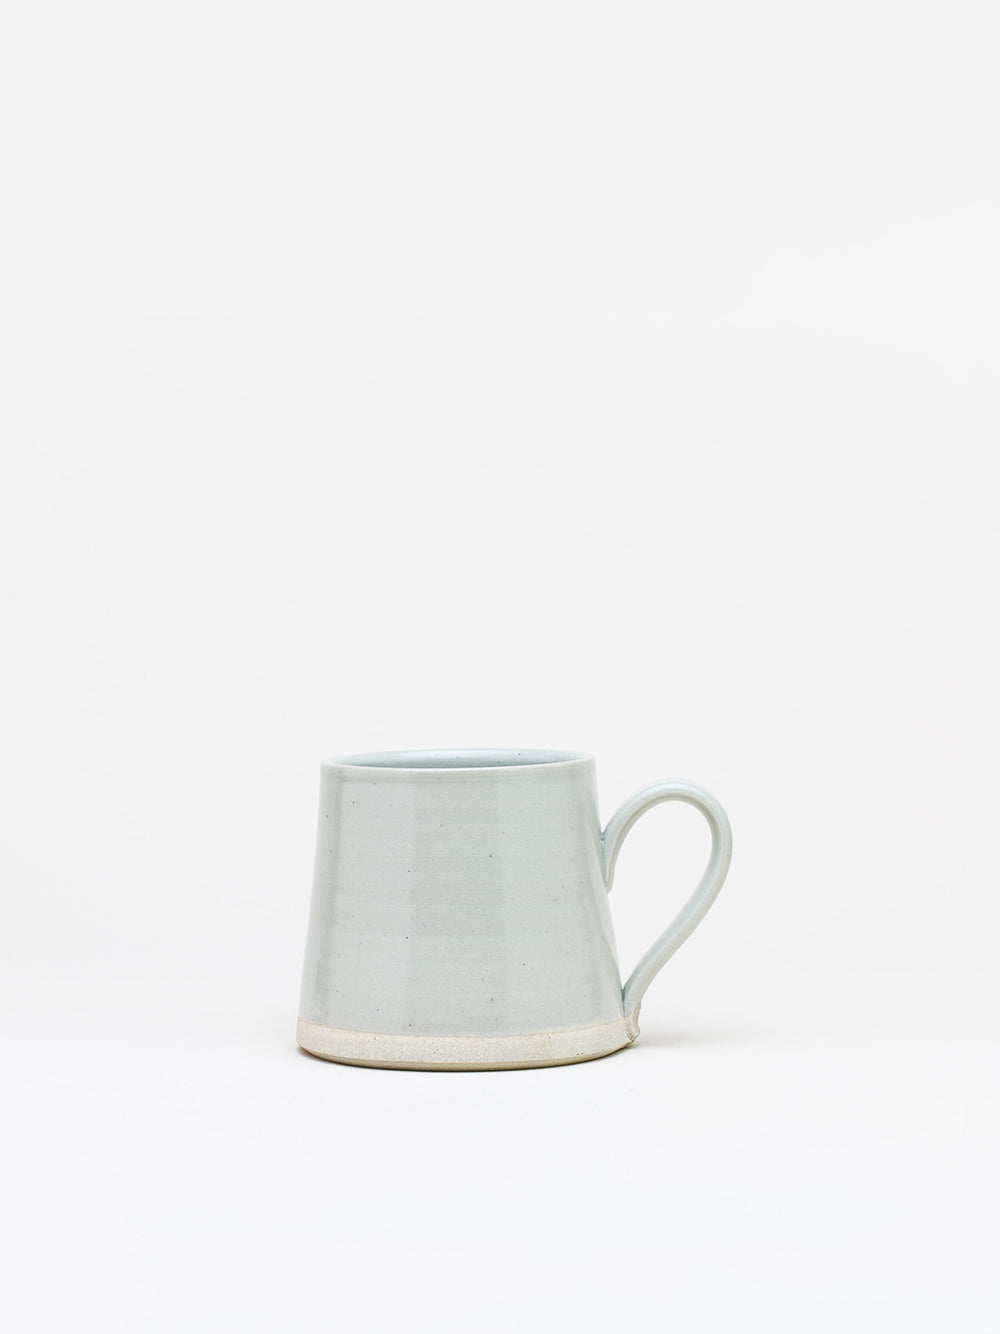 wrf small mug in mist